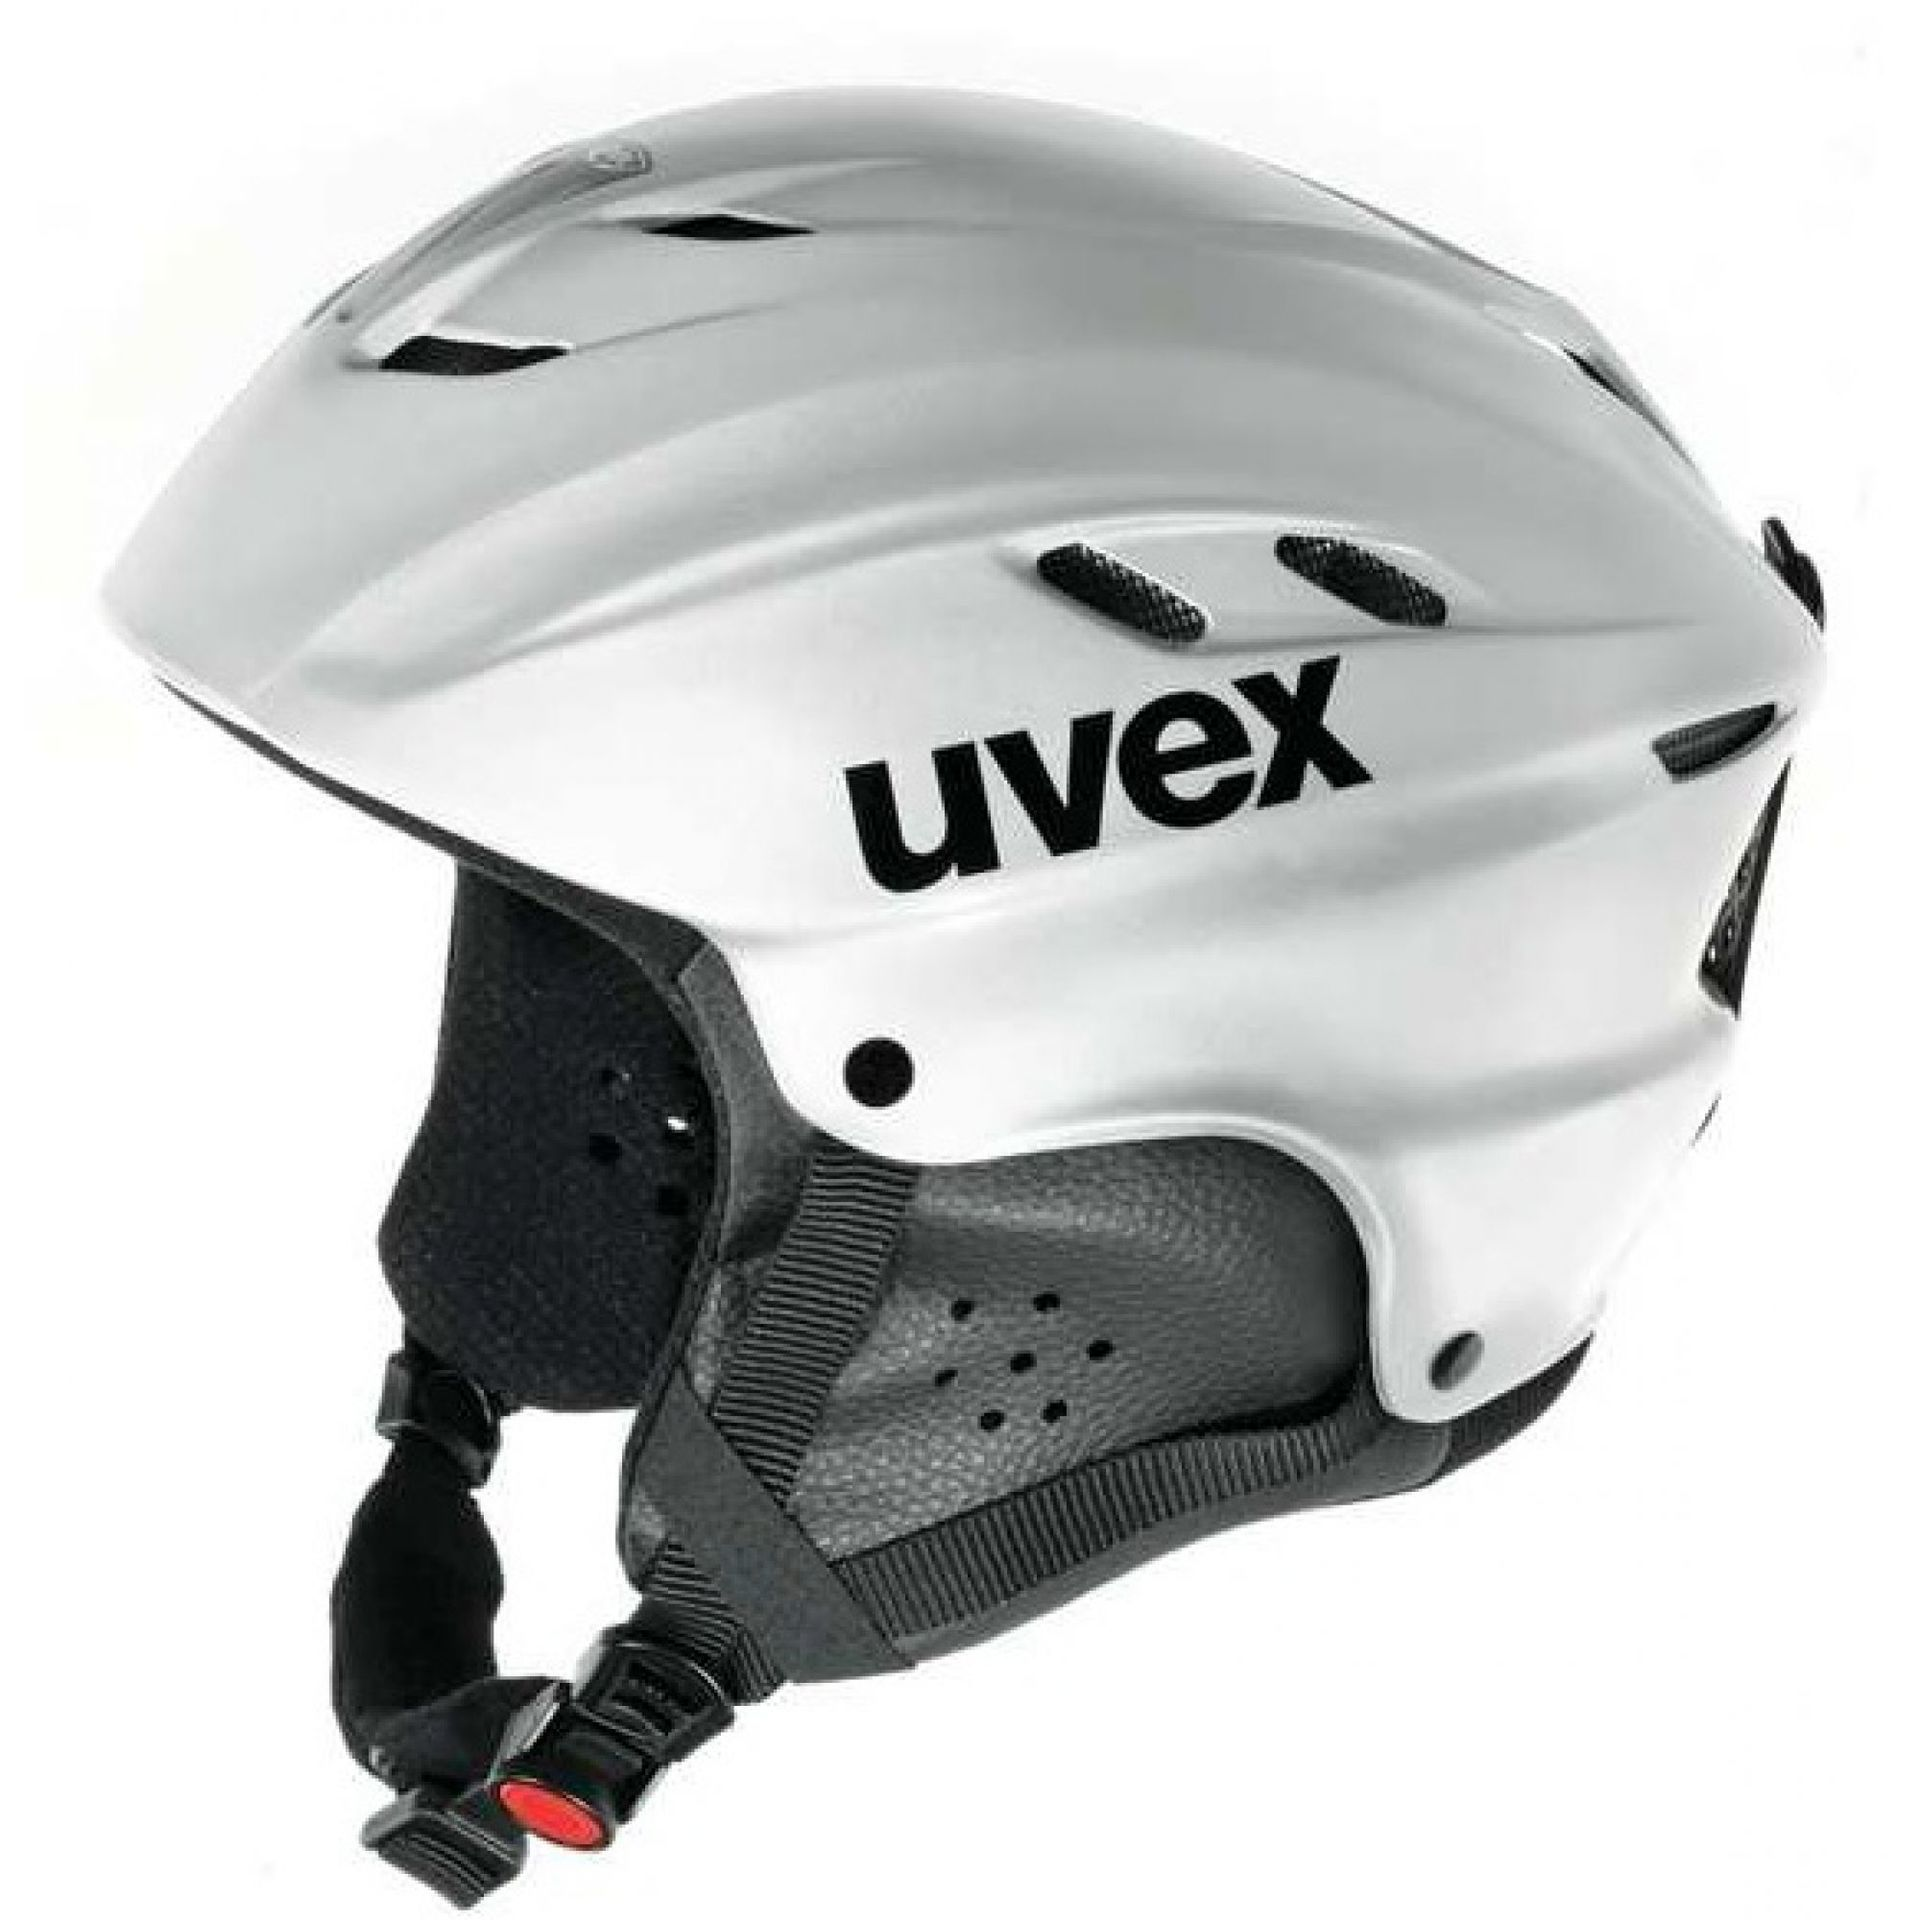 KASK UVEX X-RIDE CLASSIC